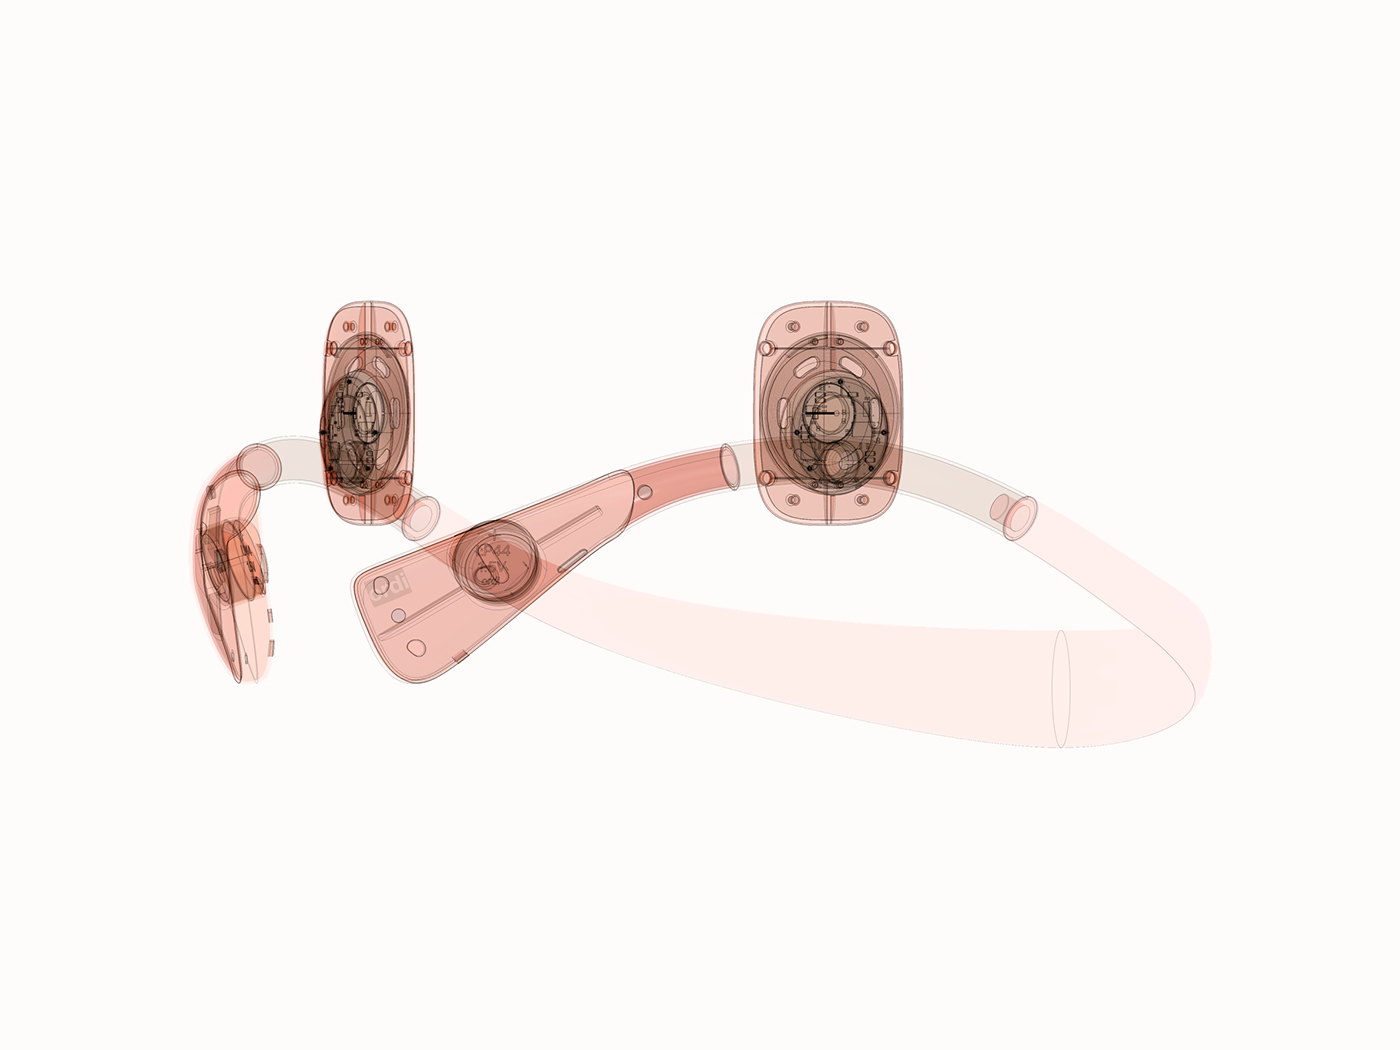 headphone hearing aid industrial design  medical portable product Wearable color music product design